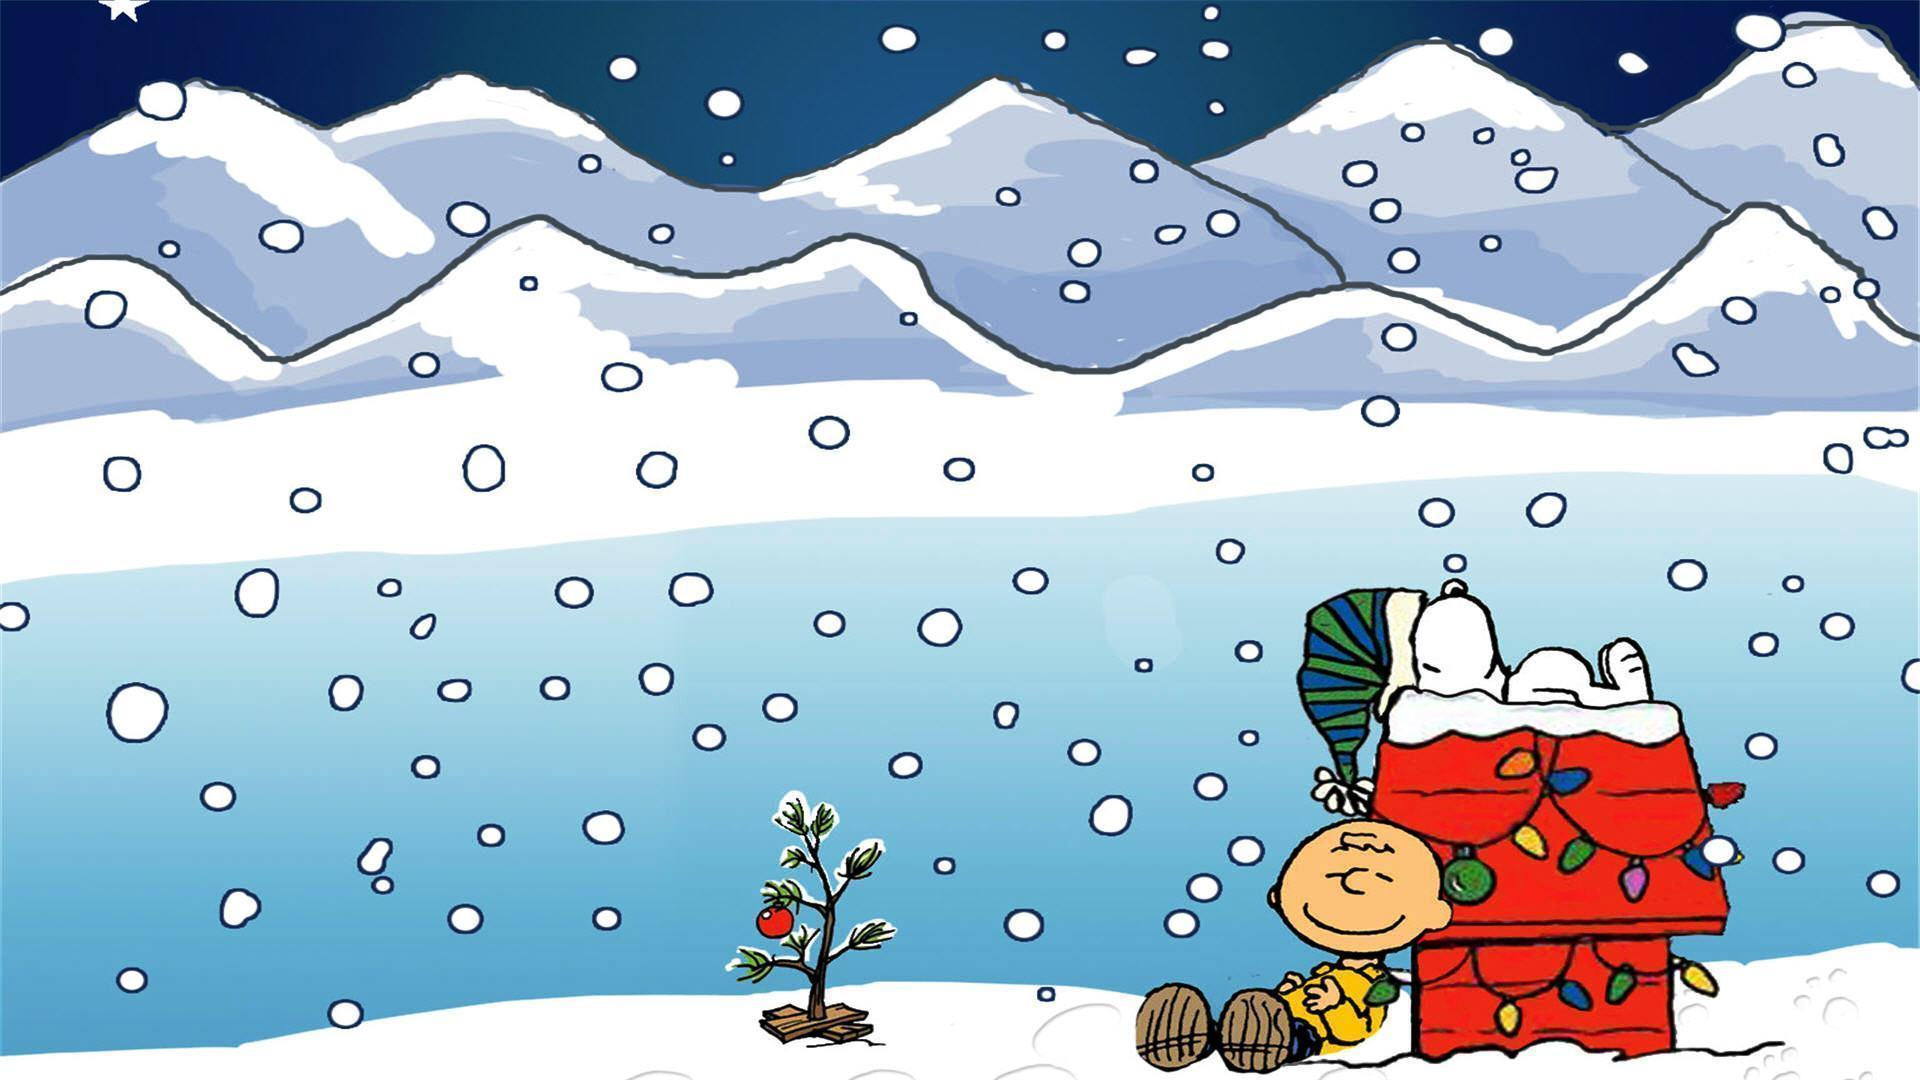 charlie brown christmas tree wallpaper wishes lol